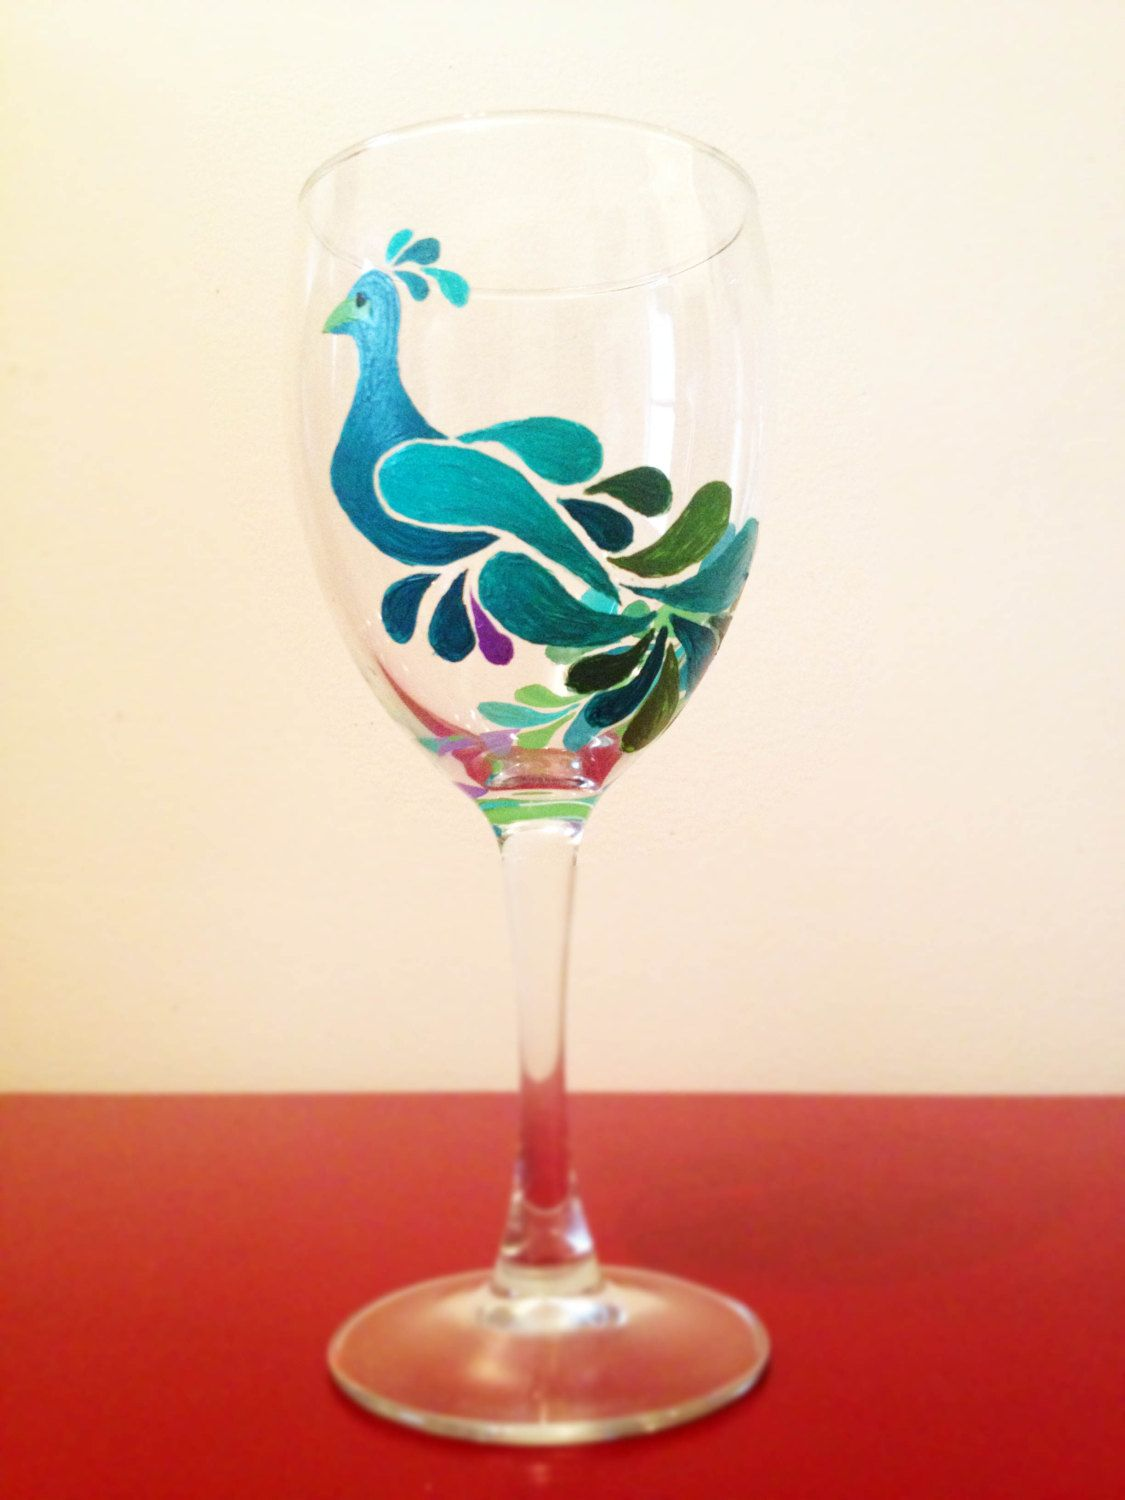 Peacock Decorative Painted Wine Glasses Set Of 4 By Jessicaspaints 40 00 Hand Painted Wine Glass Painted Wine Glasses Painting Glassware